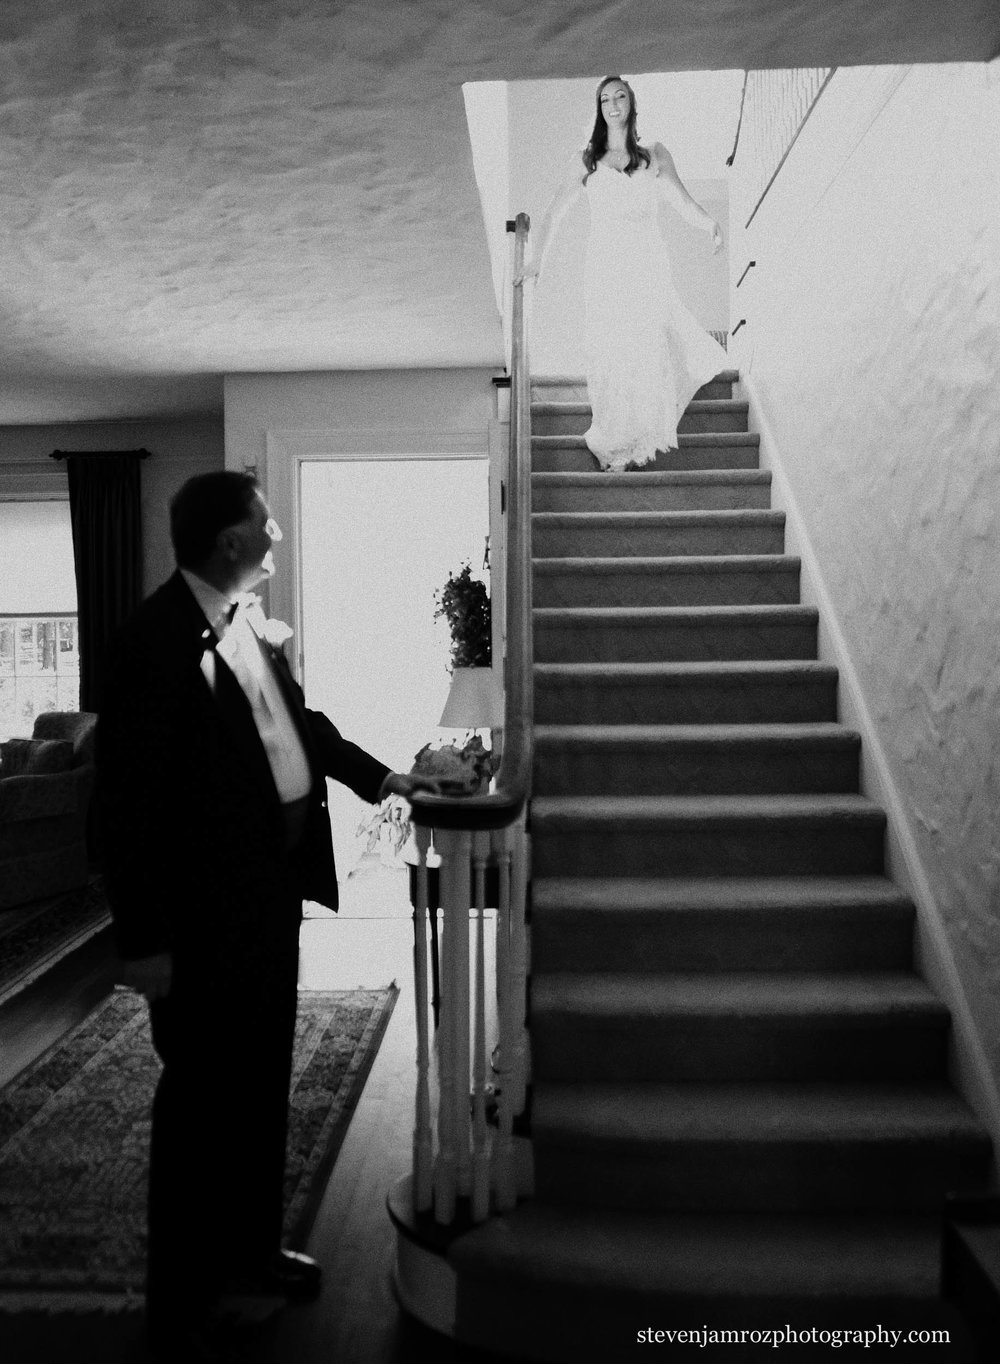 bride-comes-down-stairs-sees-dad-raleigh-wedding.jpg